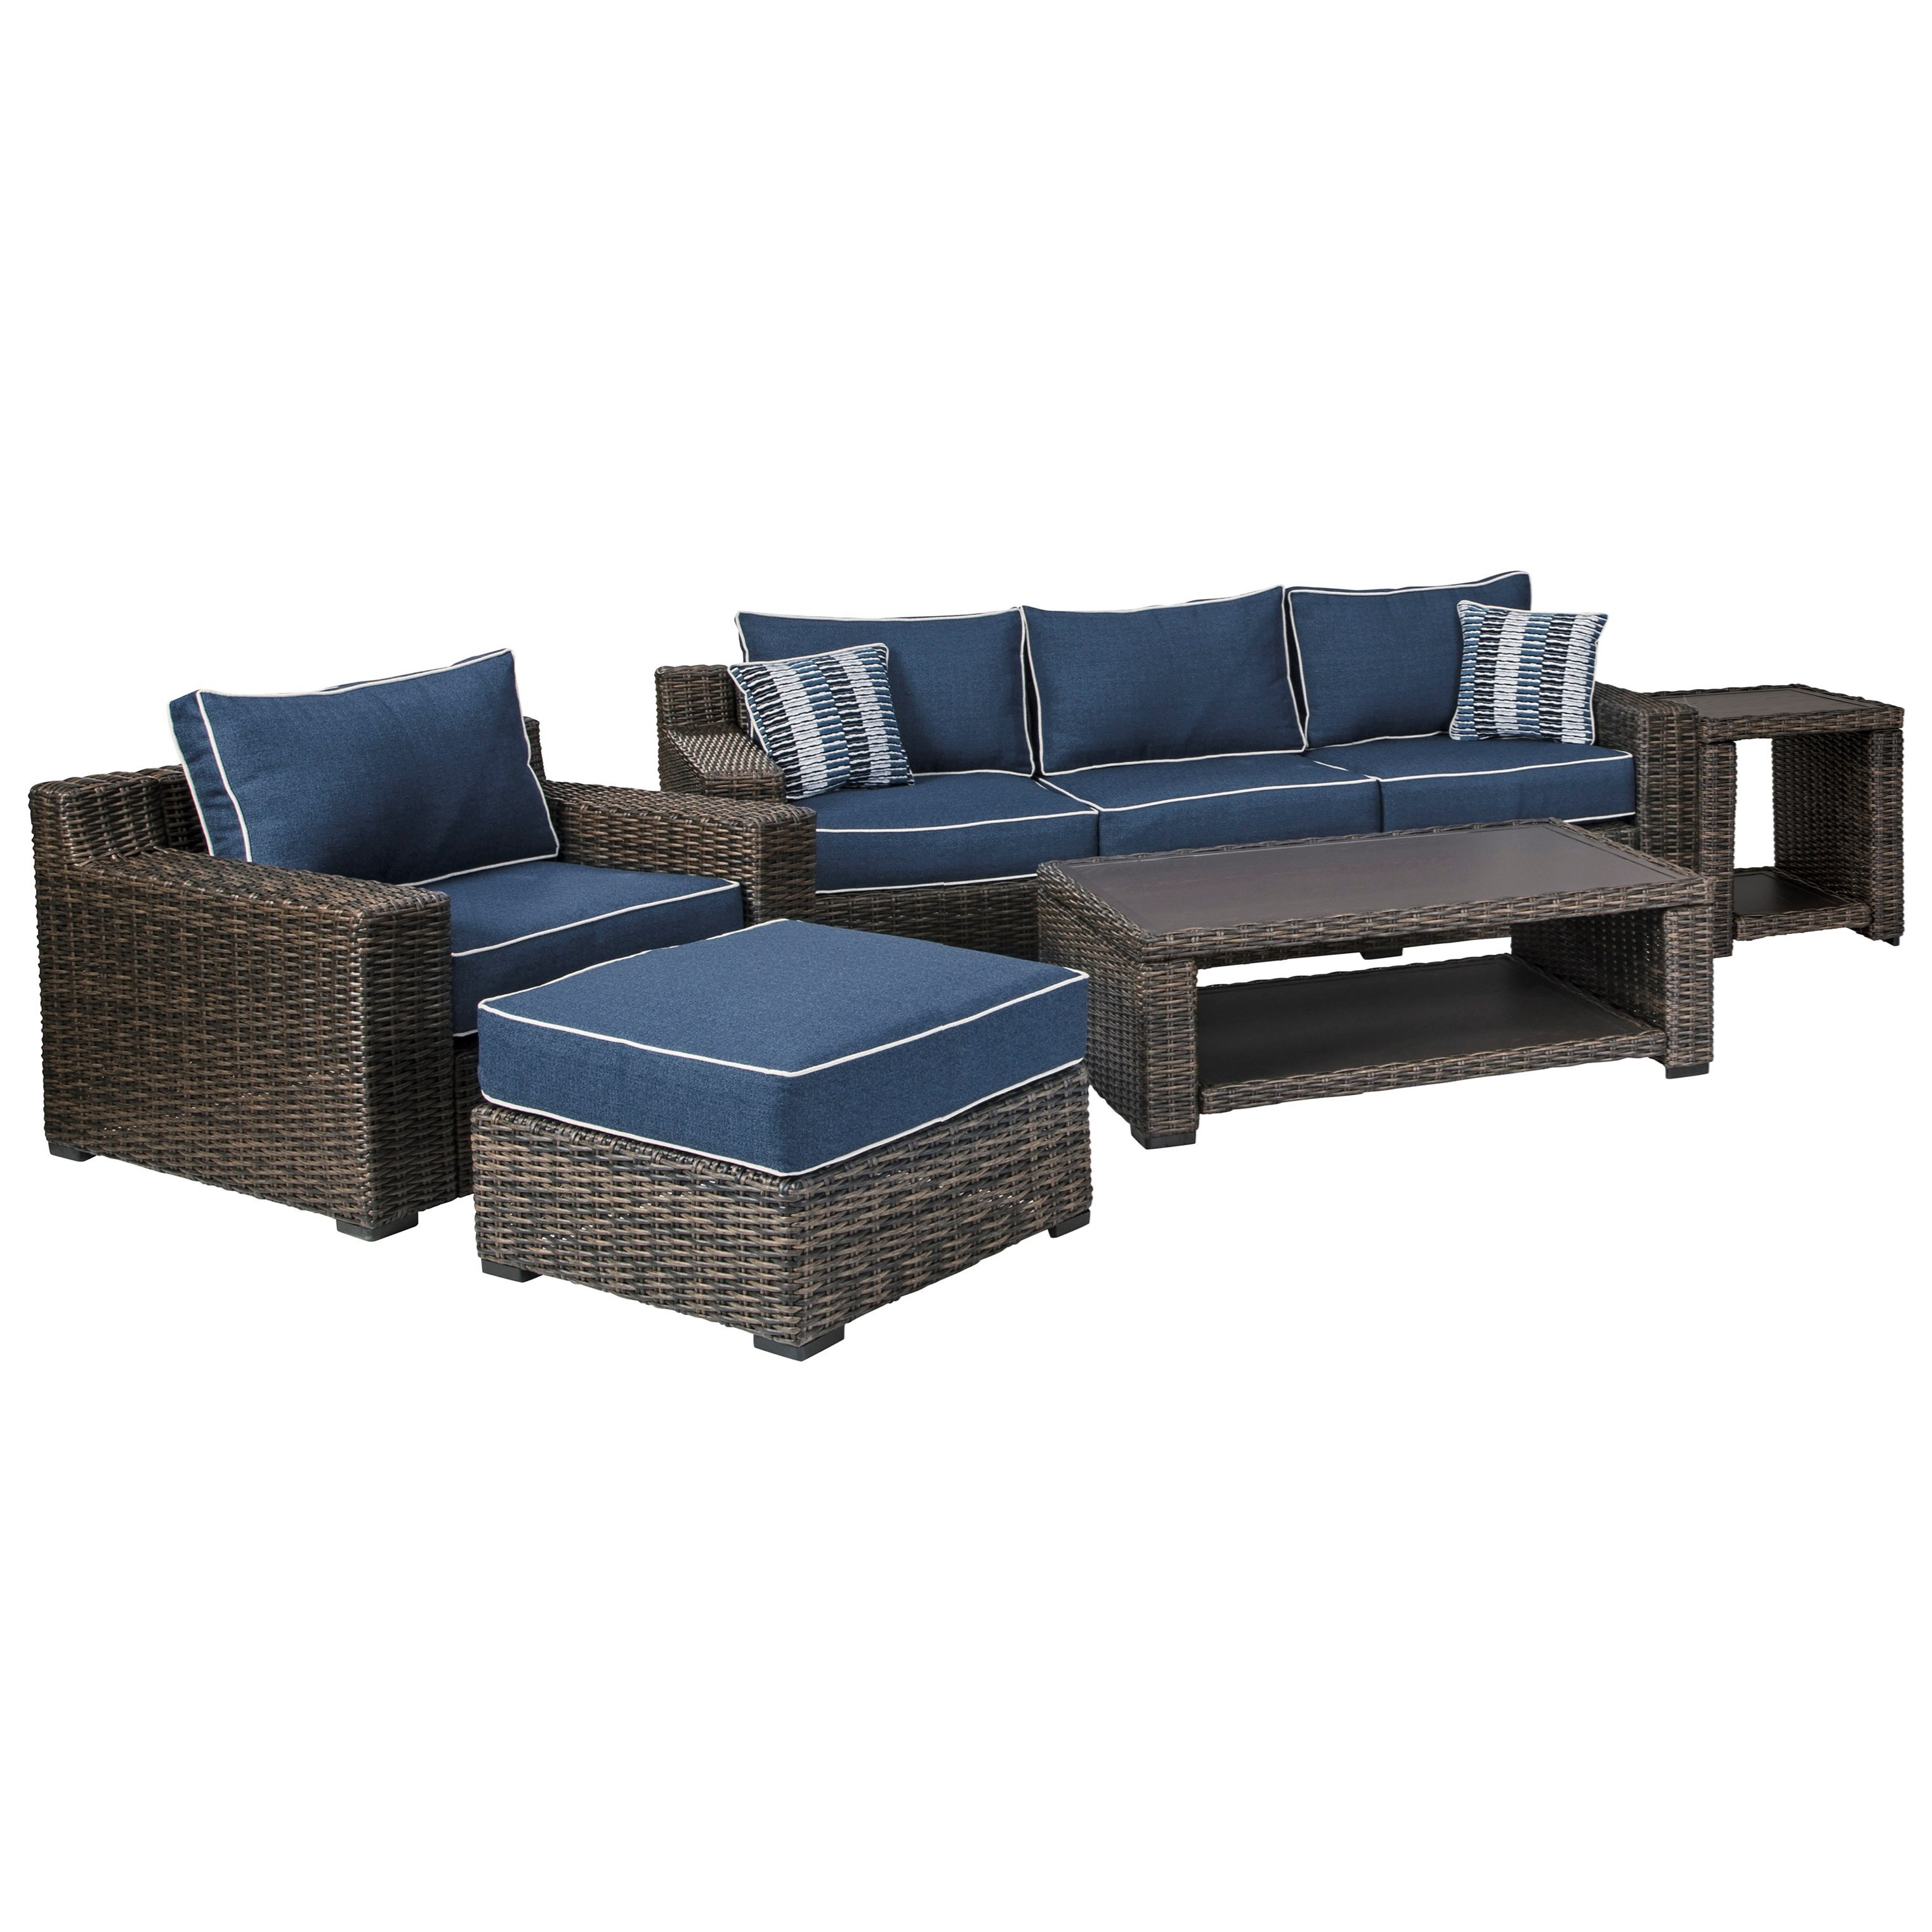 5 Pc. Outdoor Seating Group